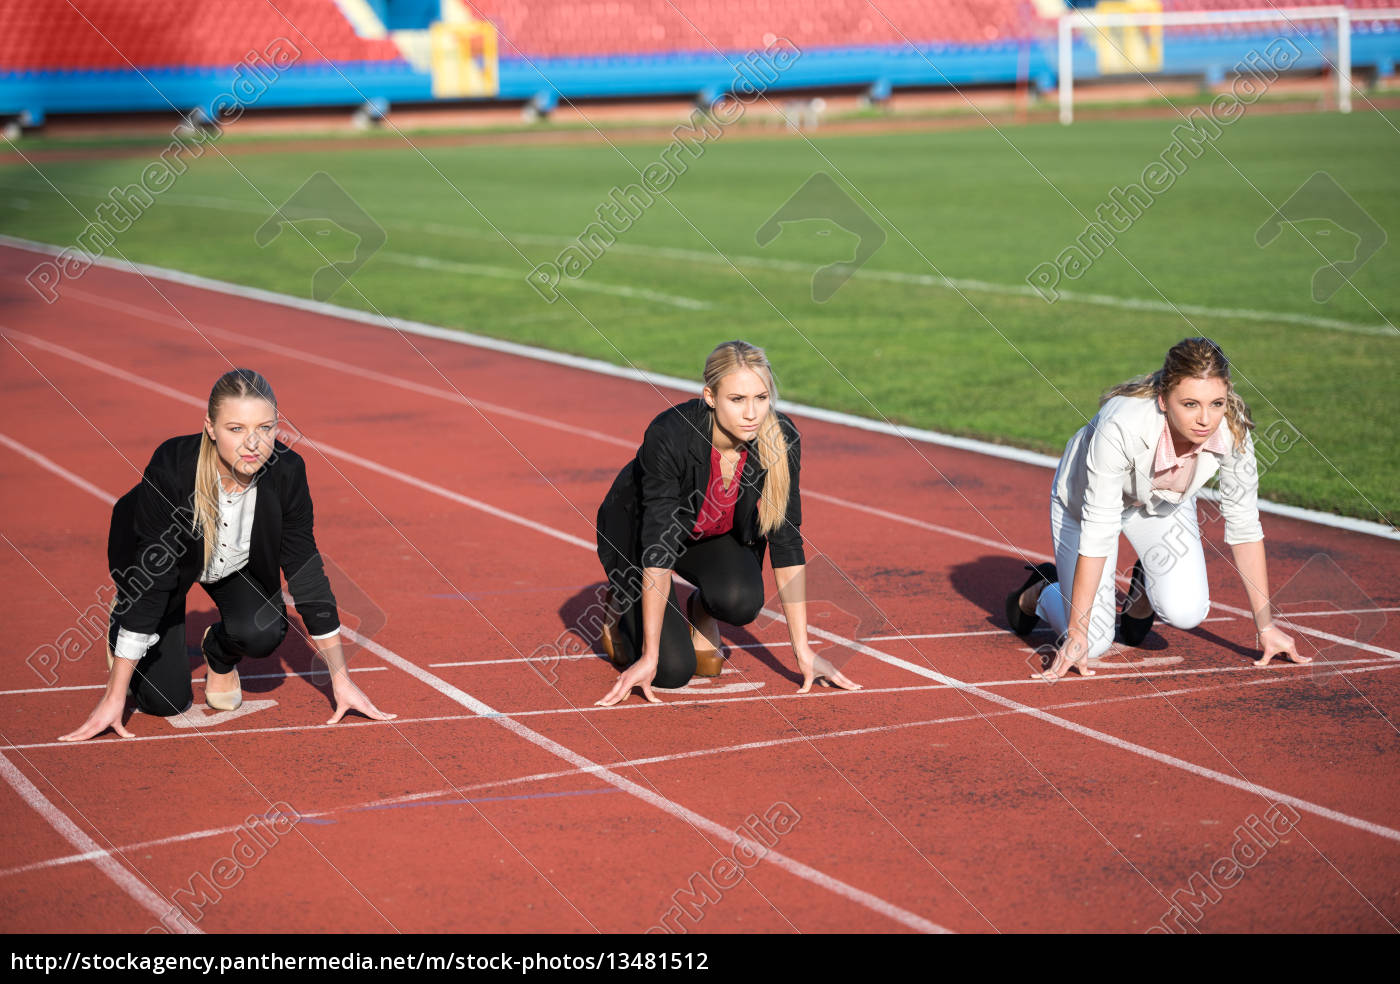 business, people, running, on, racing, track - 13481512